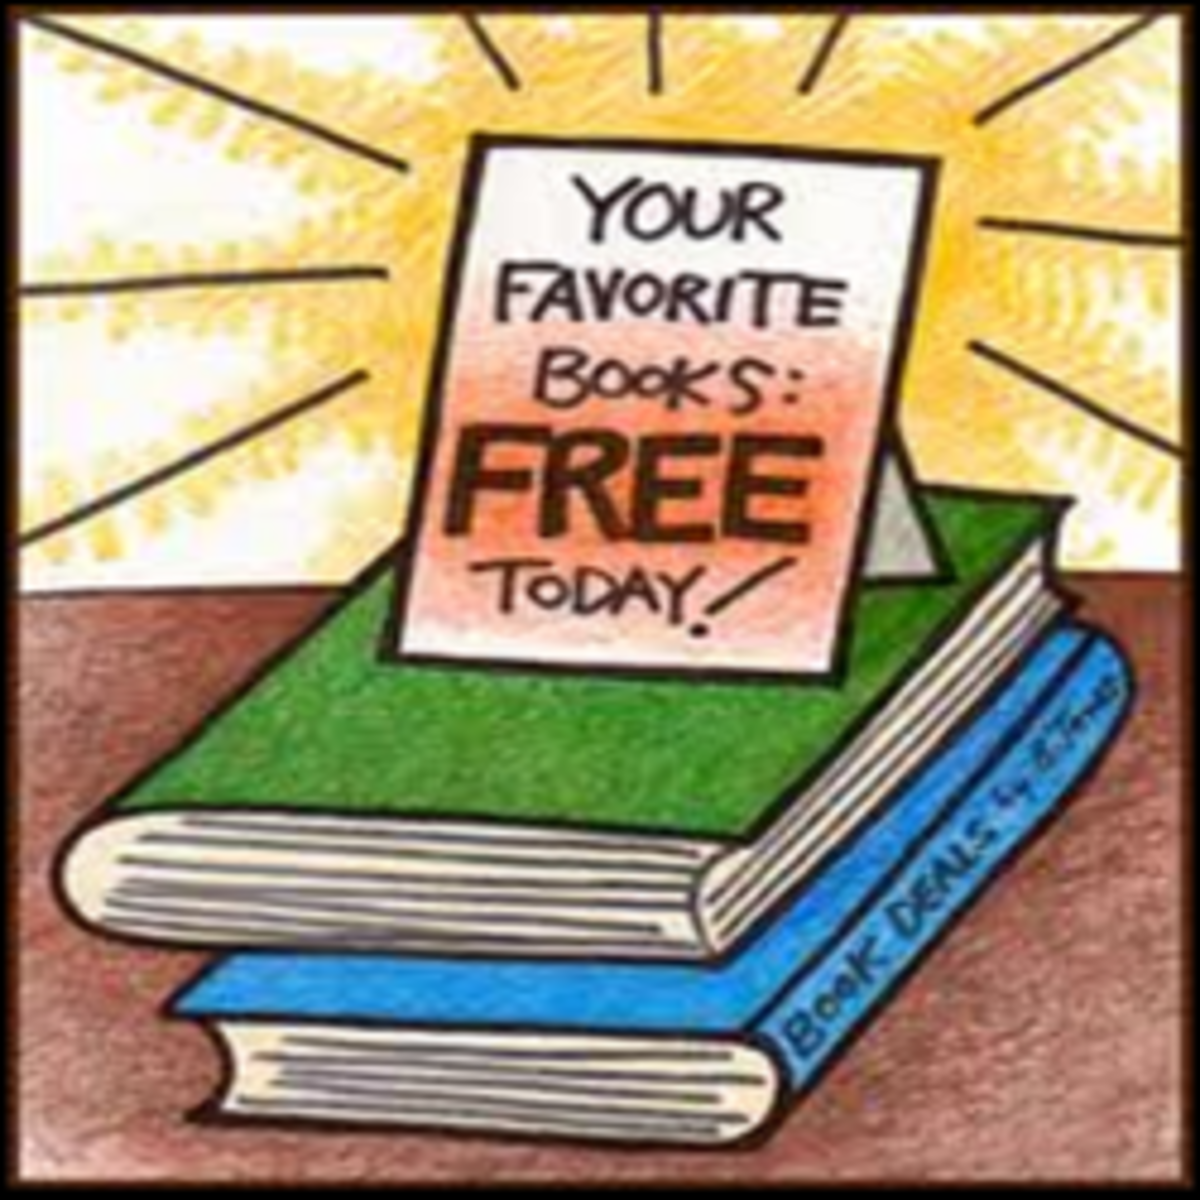 The Top 100 Best Free Kindle Books - *Updated Daily*. The list that Amazon does not give to the Book Lover. Most books a